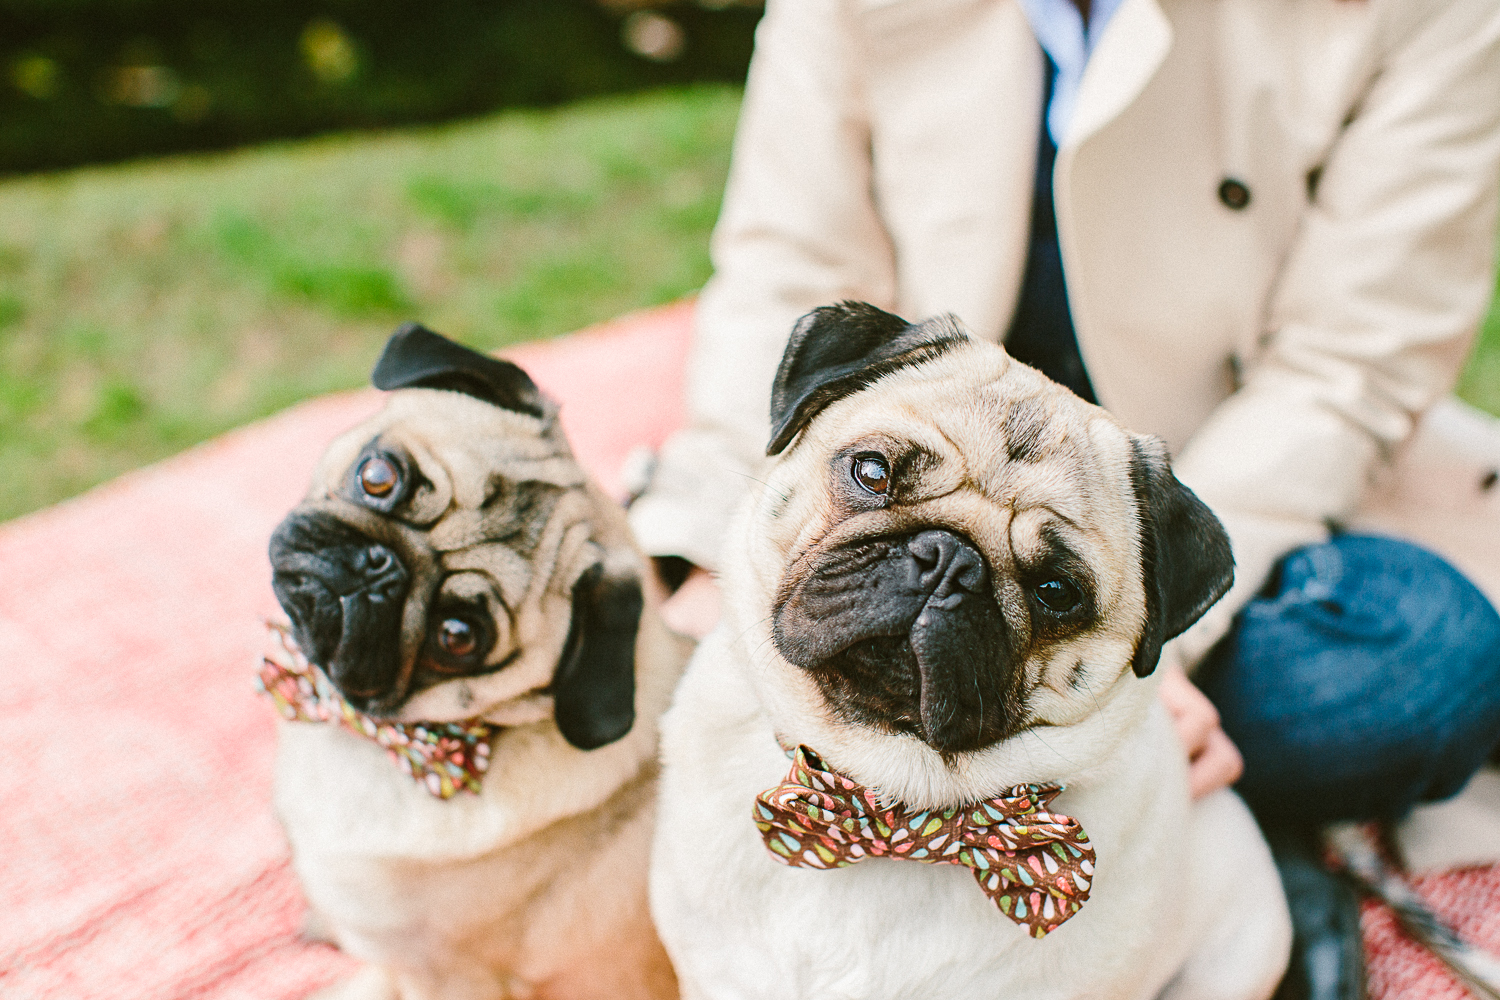 twoguineapigs_pet_photography_oh_jaffa_picnic_pugs_1500-3.jpg